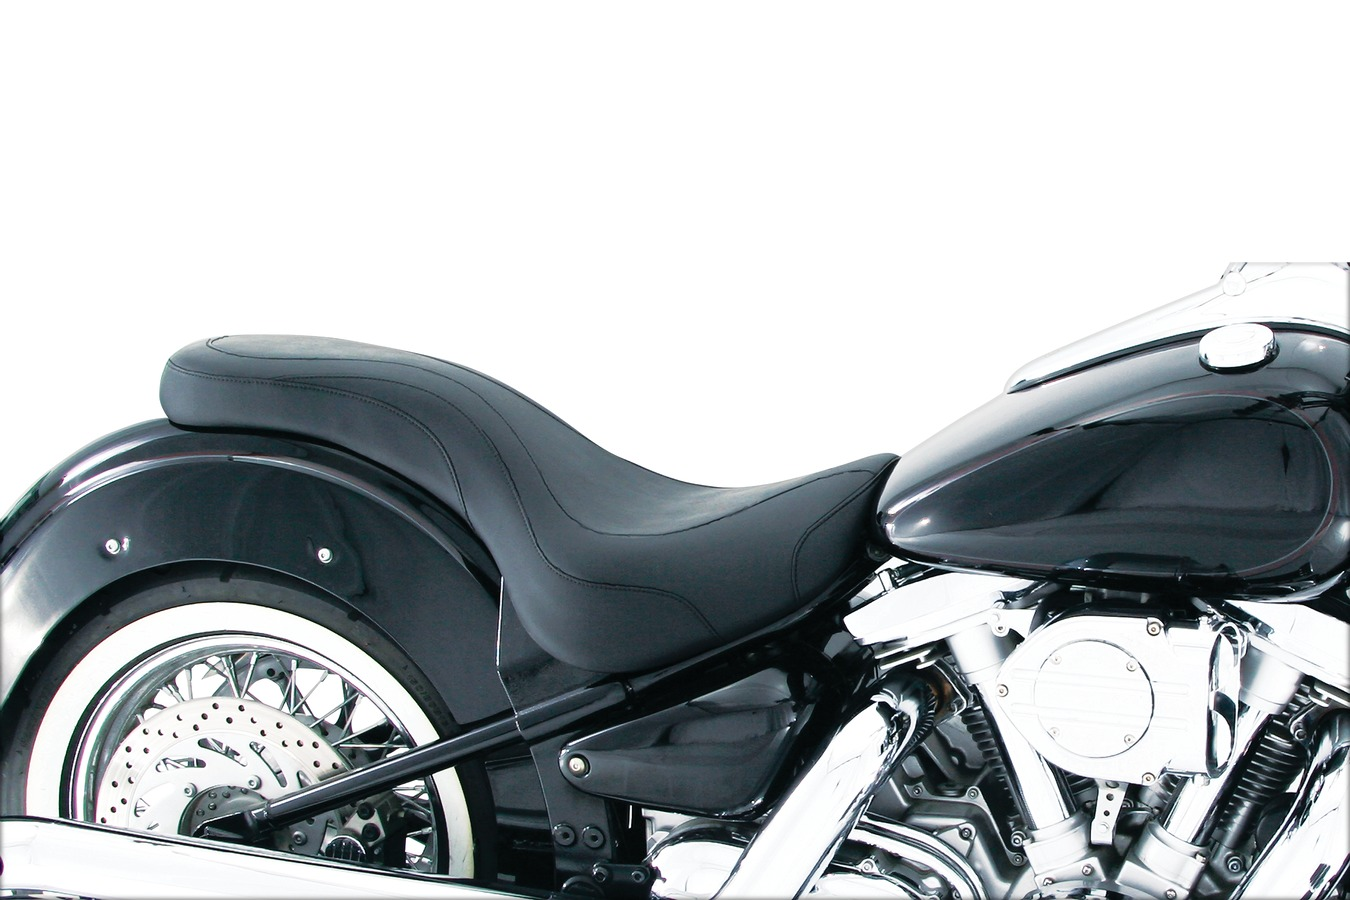 Victory Motorcycle Parts >> Mustang One Piece Daytripper Low Profile 2 Up Seat Saddle Victory